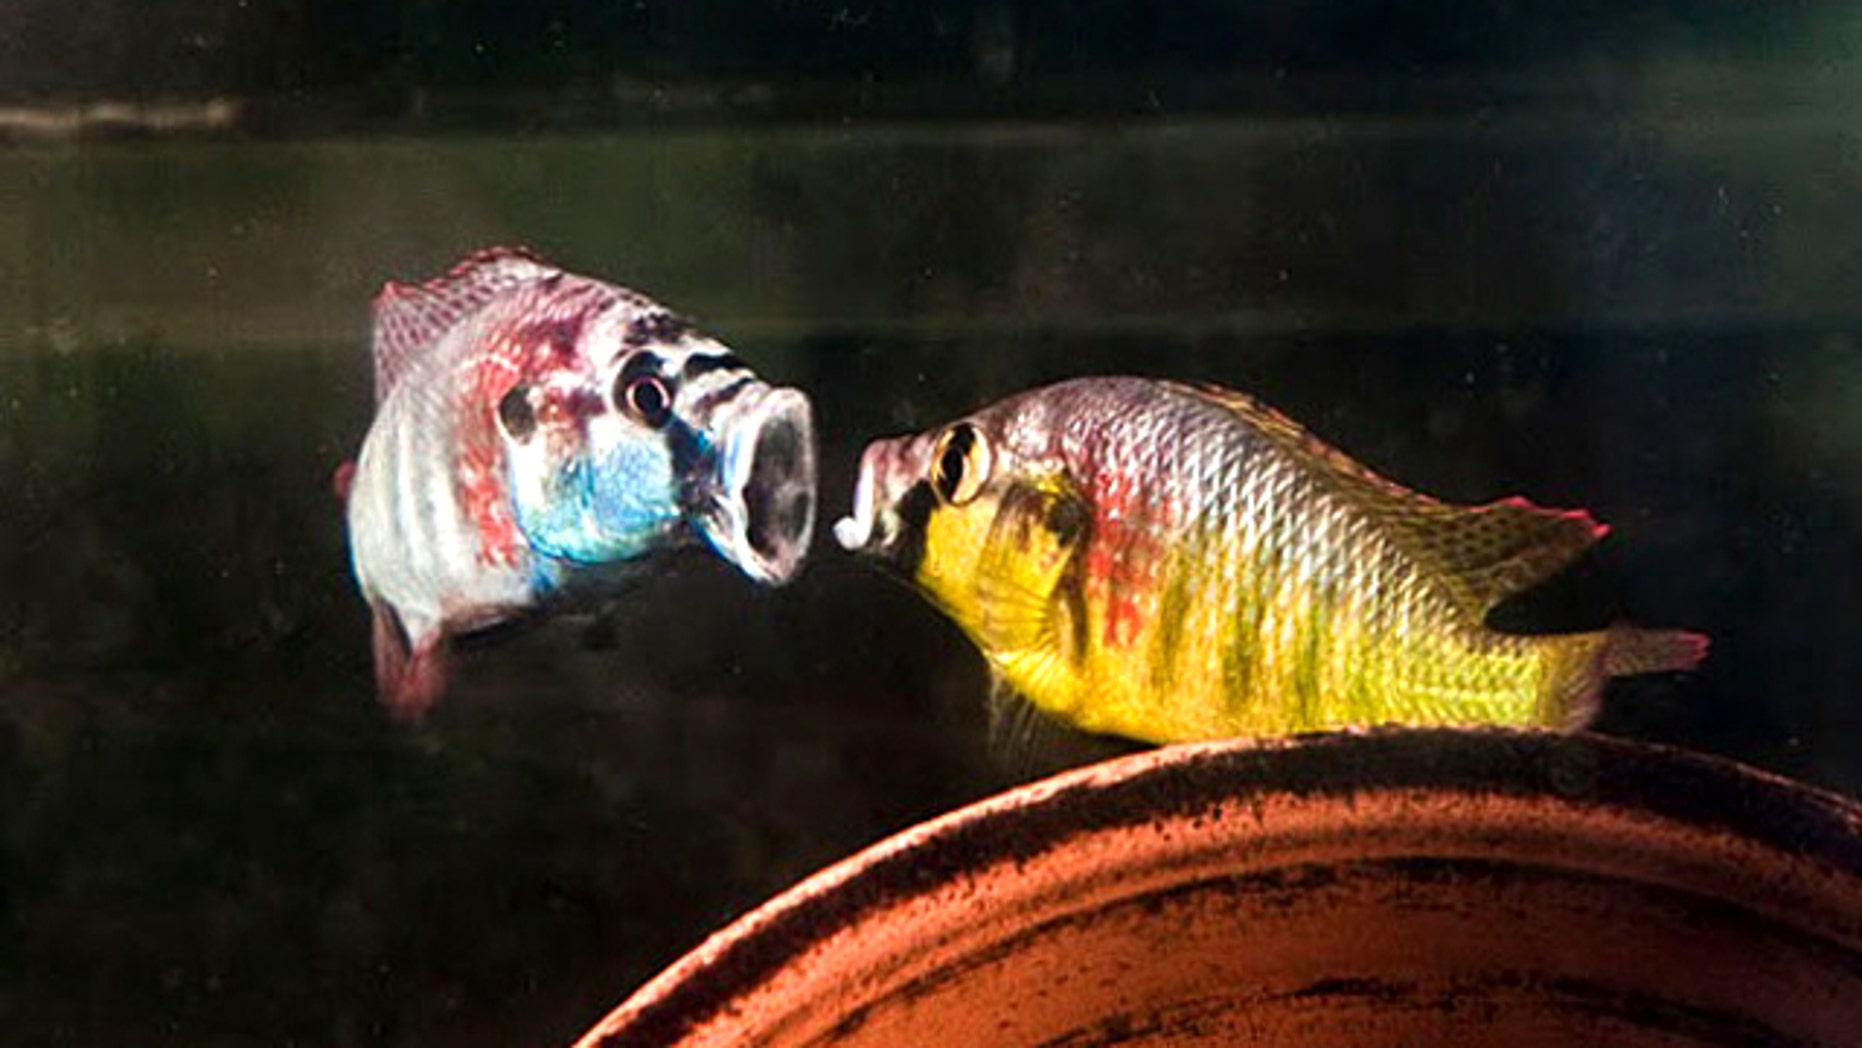 "Two male cichlids spar with each other by showing what big mouths they have. When two fish fight, all their movements are at least slightly out of sync. But when the foe is a fish's mirror image, the ""opponent's"" actions are perfectly in time, which seems to trigger an element of fear."